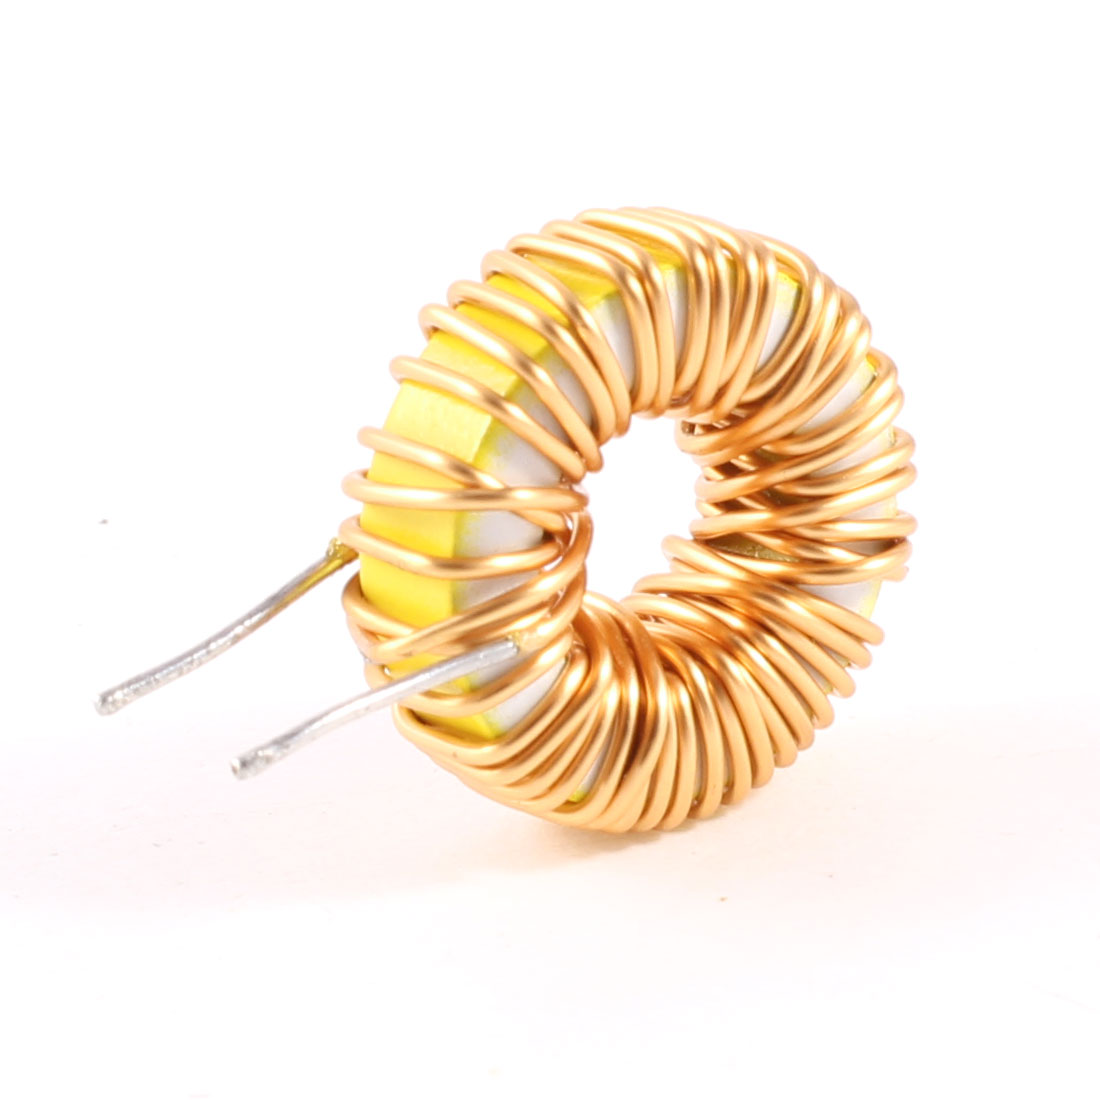 Toroidal Winding Toroid Winding Toroid Coils Toroid Core Inductor Inductor Wire 5pcs Toroid Core Inductors Wire Wind Wound DIY Mah 100uh 6a Coil My09 19 Core Toroid